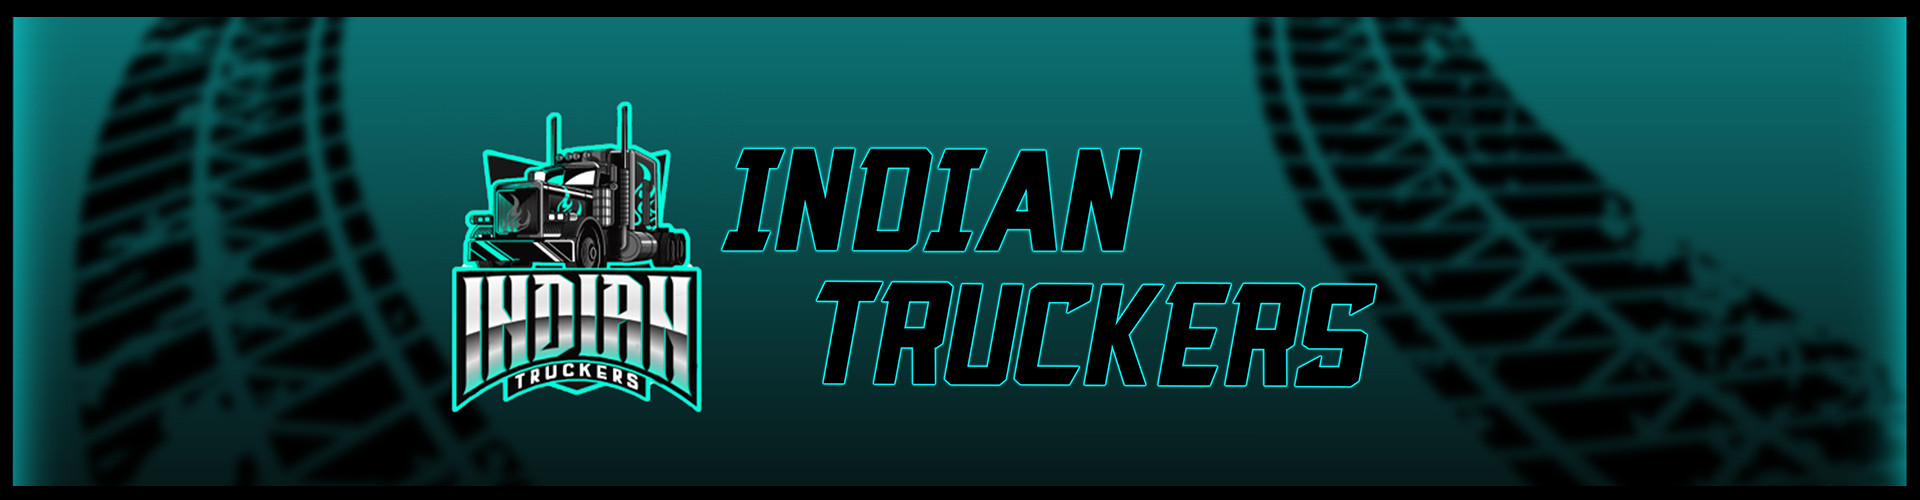 INDIAN TRUCKERS 4th PUBLIC CONVOY